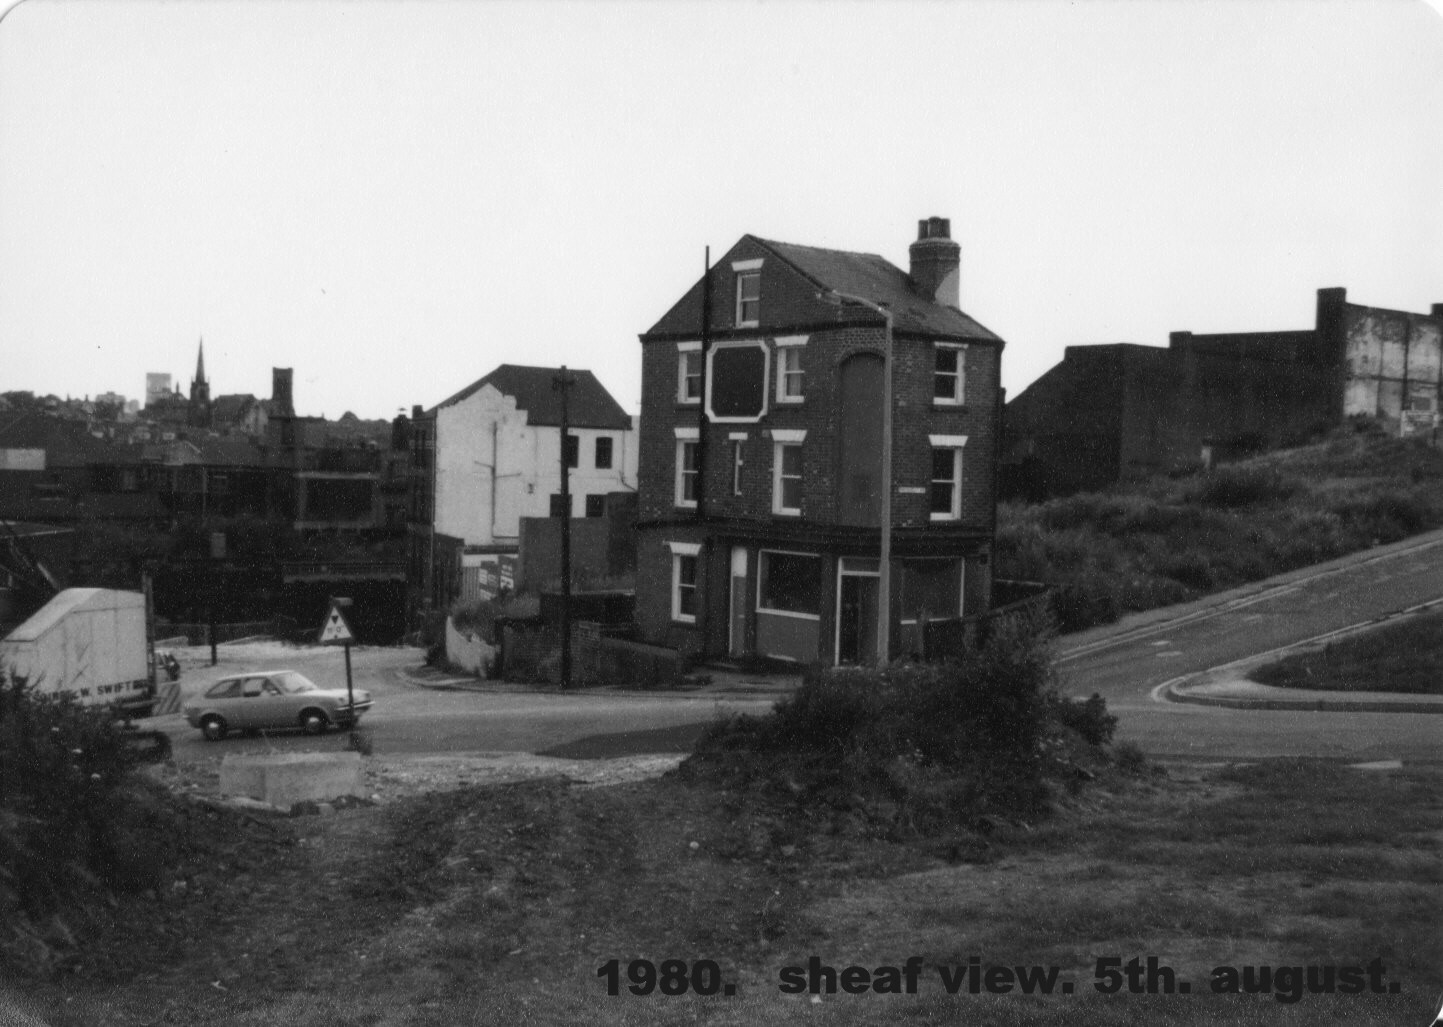 Sheaf View